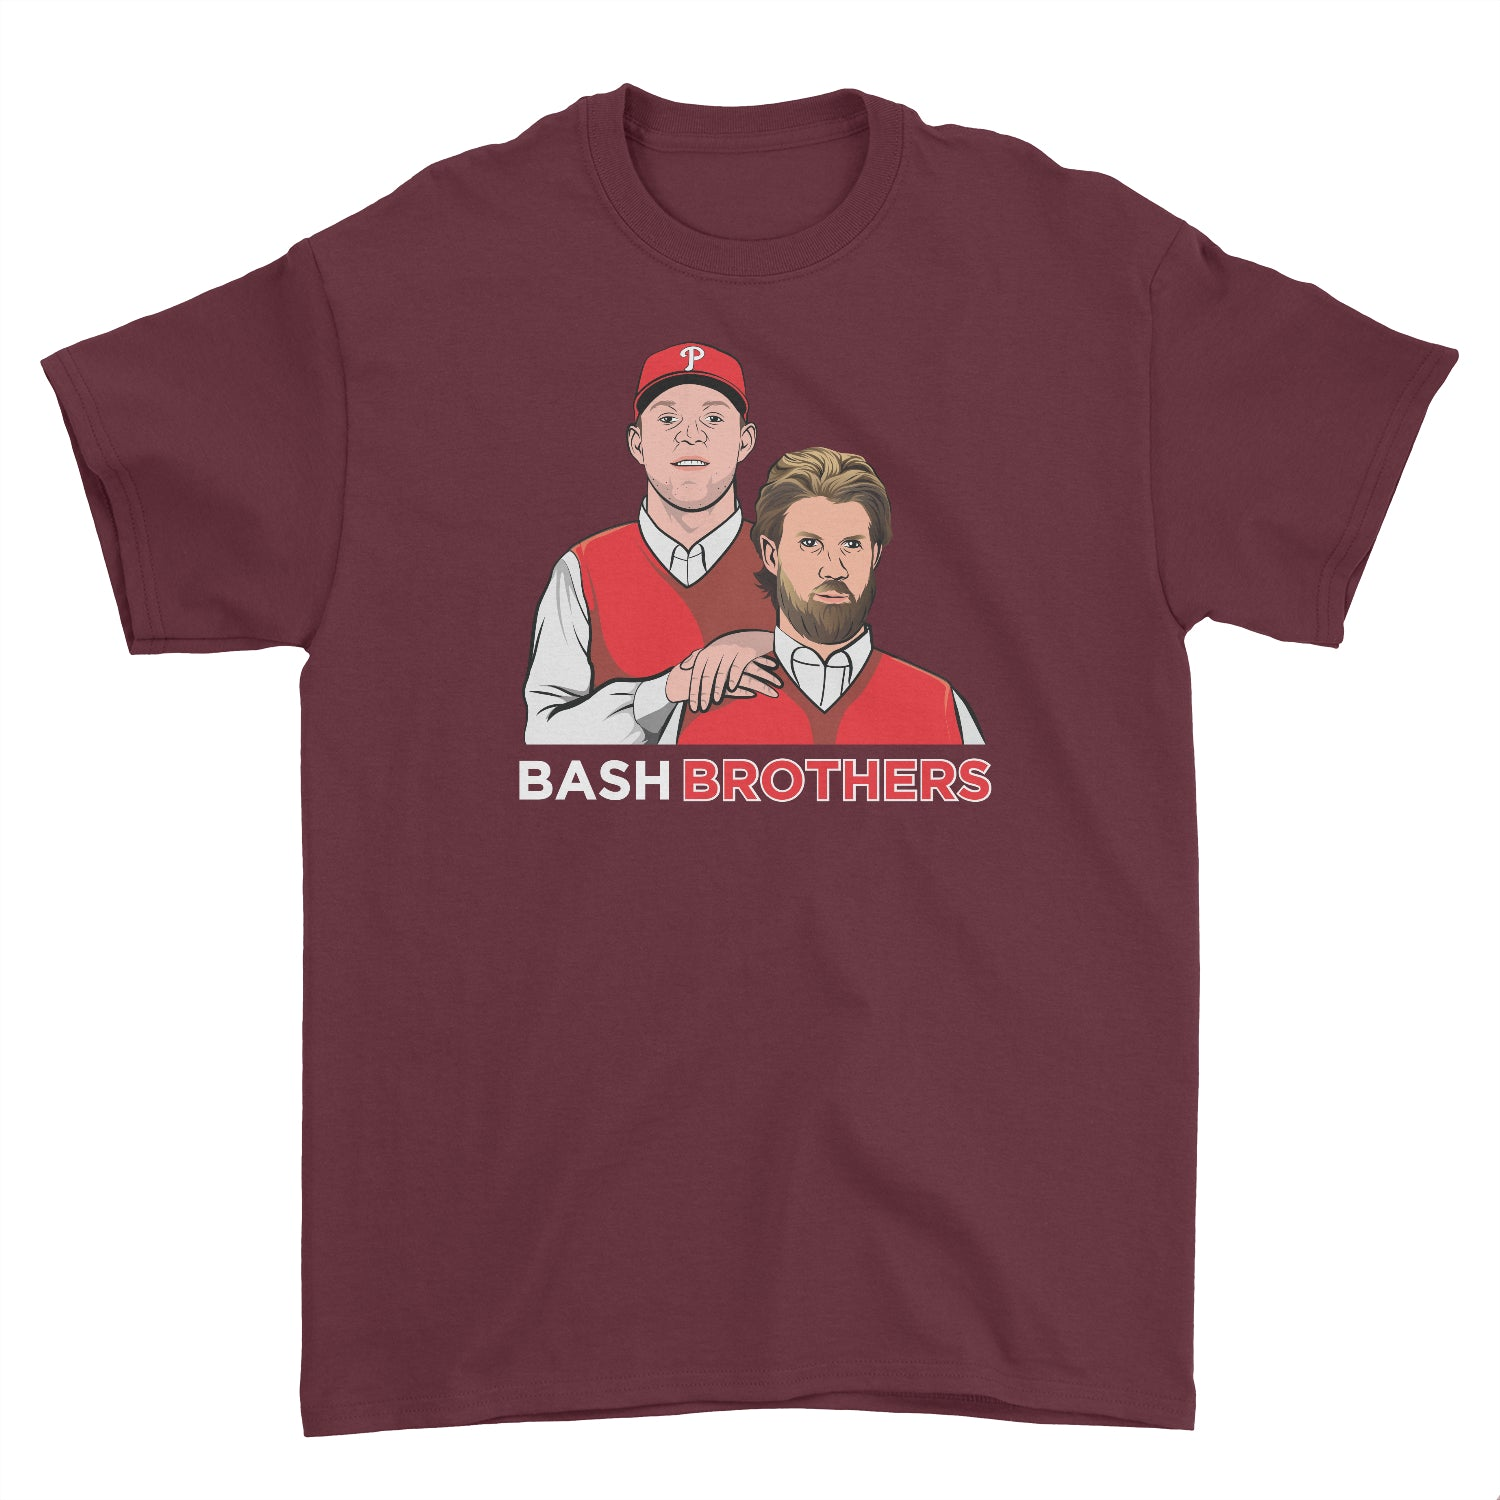 Philly Baseball Bash Brothers Inspired Cotton T-Shirt